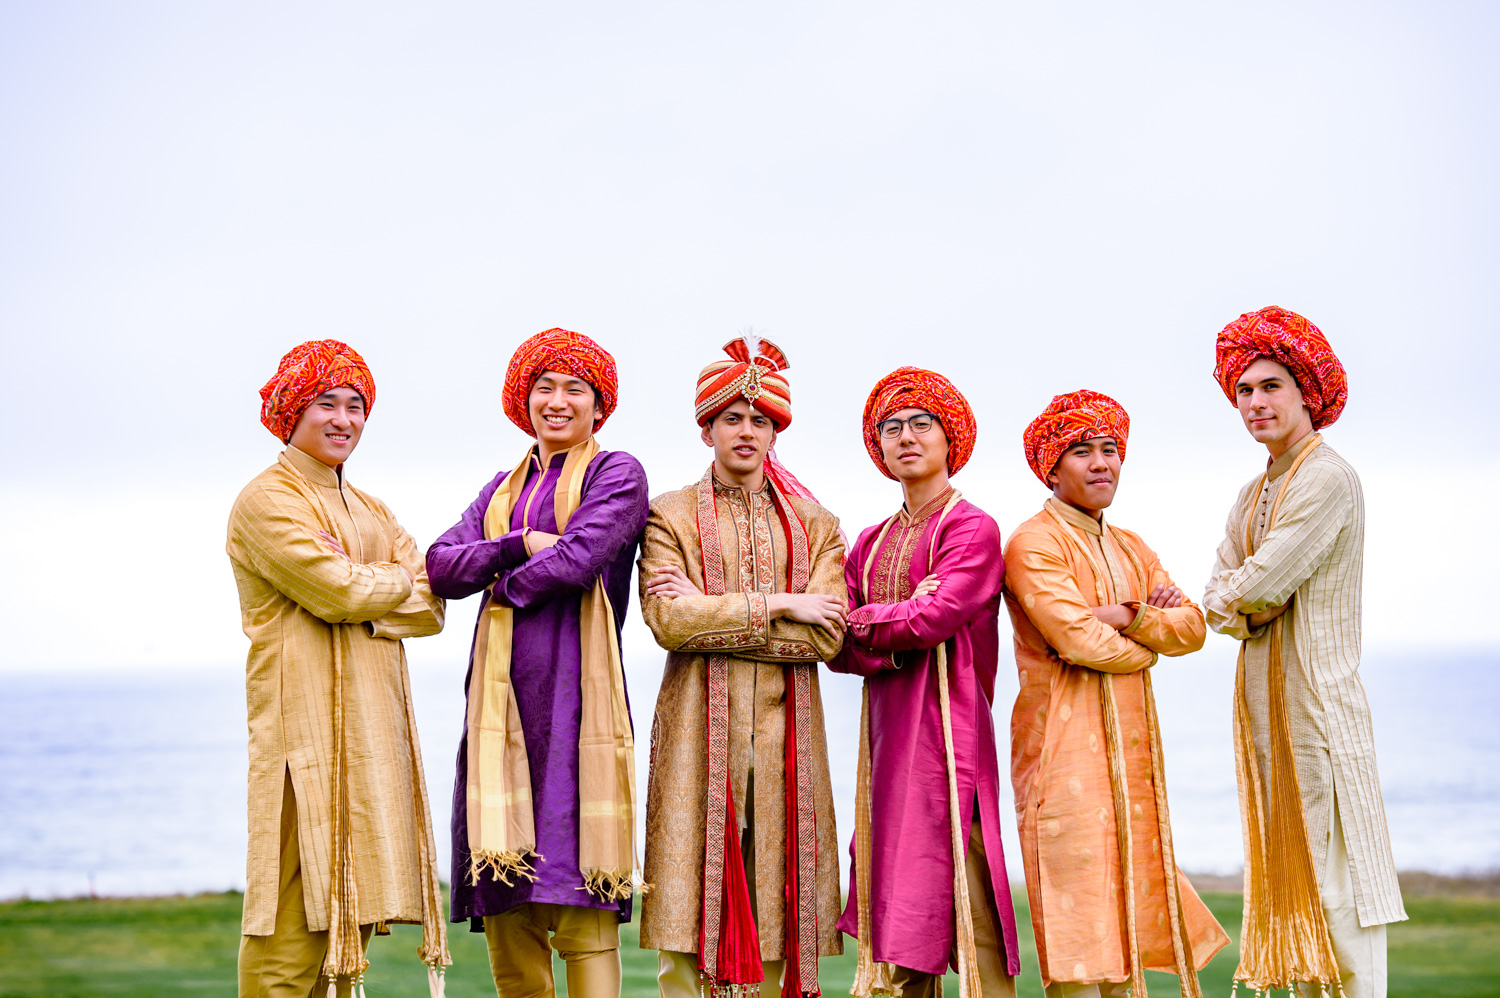 Indian Groomsmen outfits